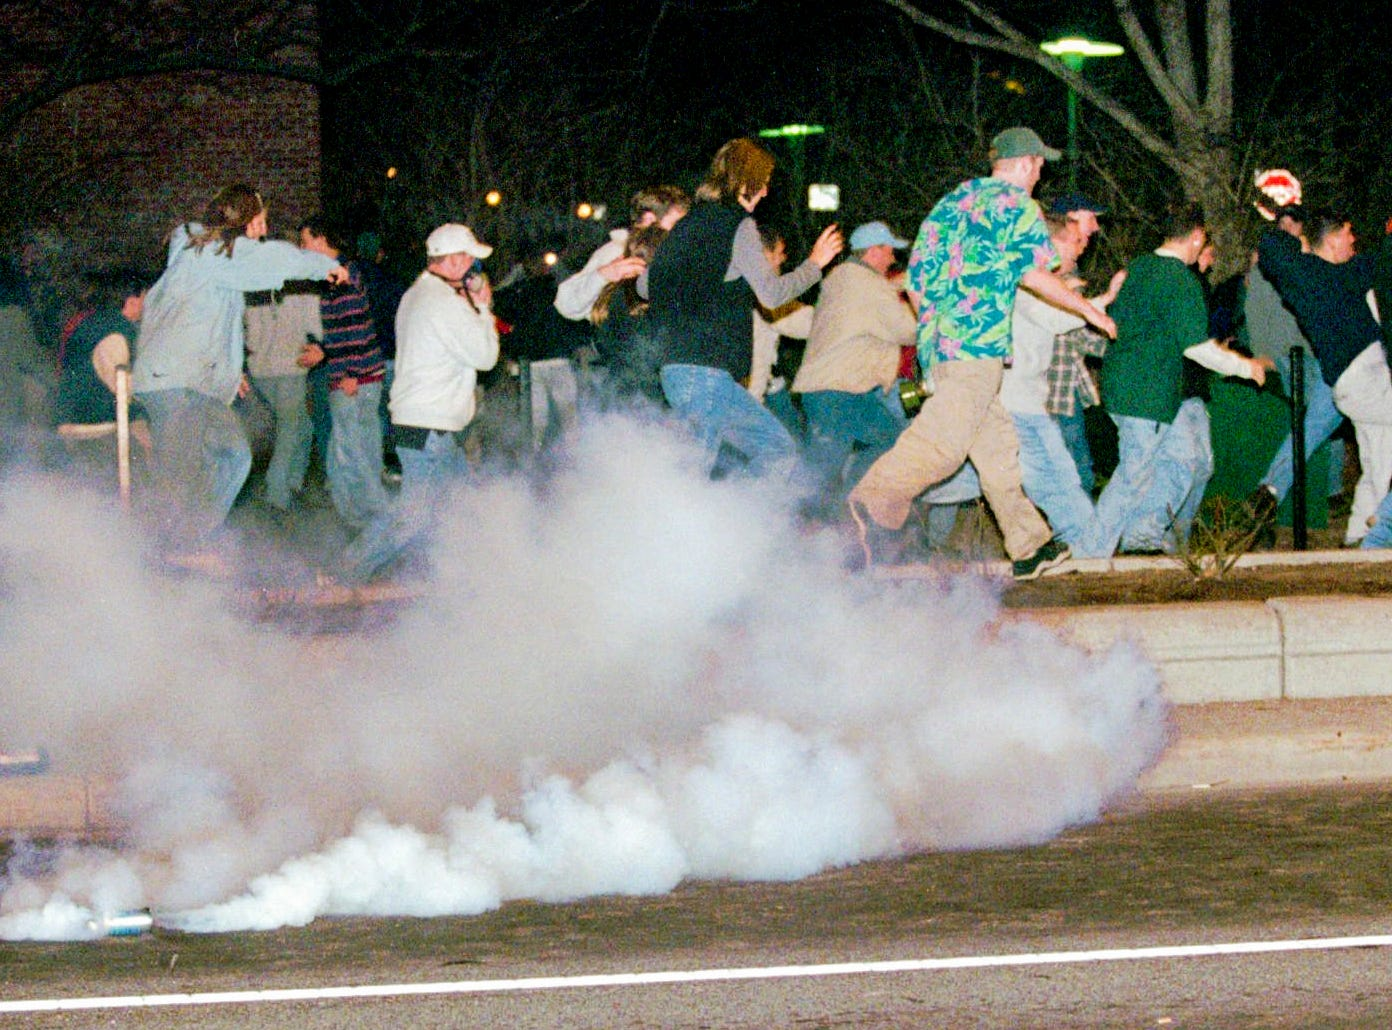 People flee from tear gas along Grand River Avenue in East Lansing, Michigan, early Sunday morning on March 28, 1999, following the Michigan State loss to Duke at the NCAA Final Four of the Men's Basketball Tournament in St. Petersburg, Fla.